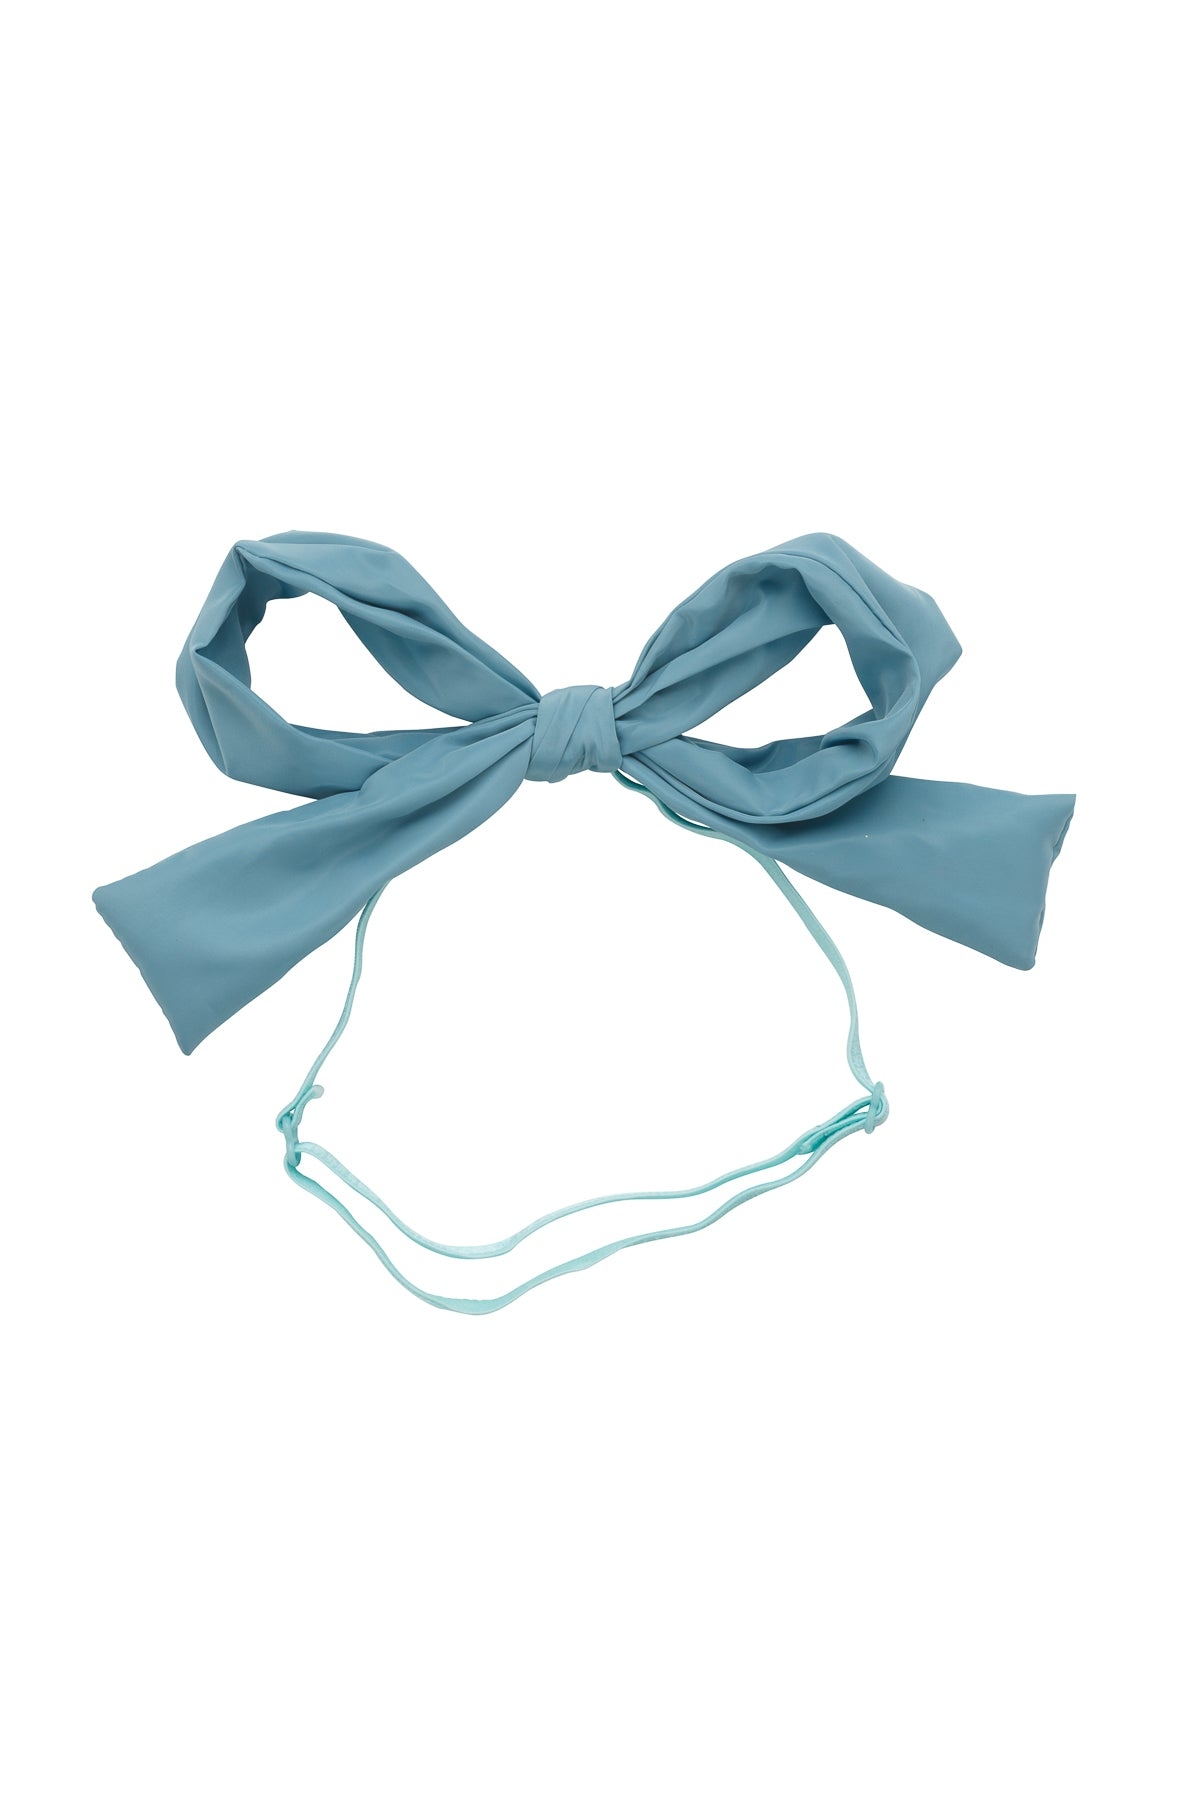 Party Bow Taffeta Wrap - Light Turquoise - PROJECT 6, modest fashion